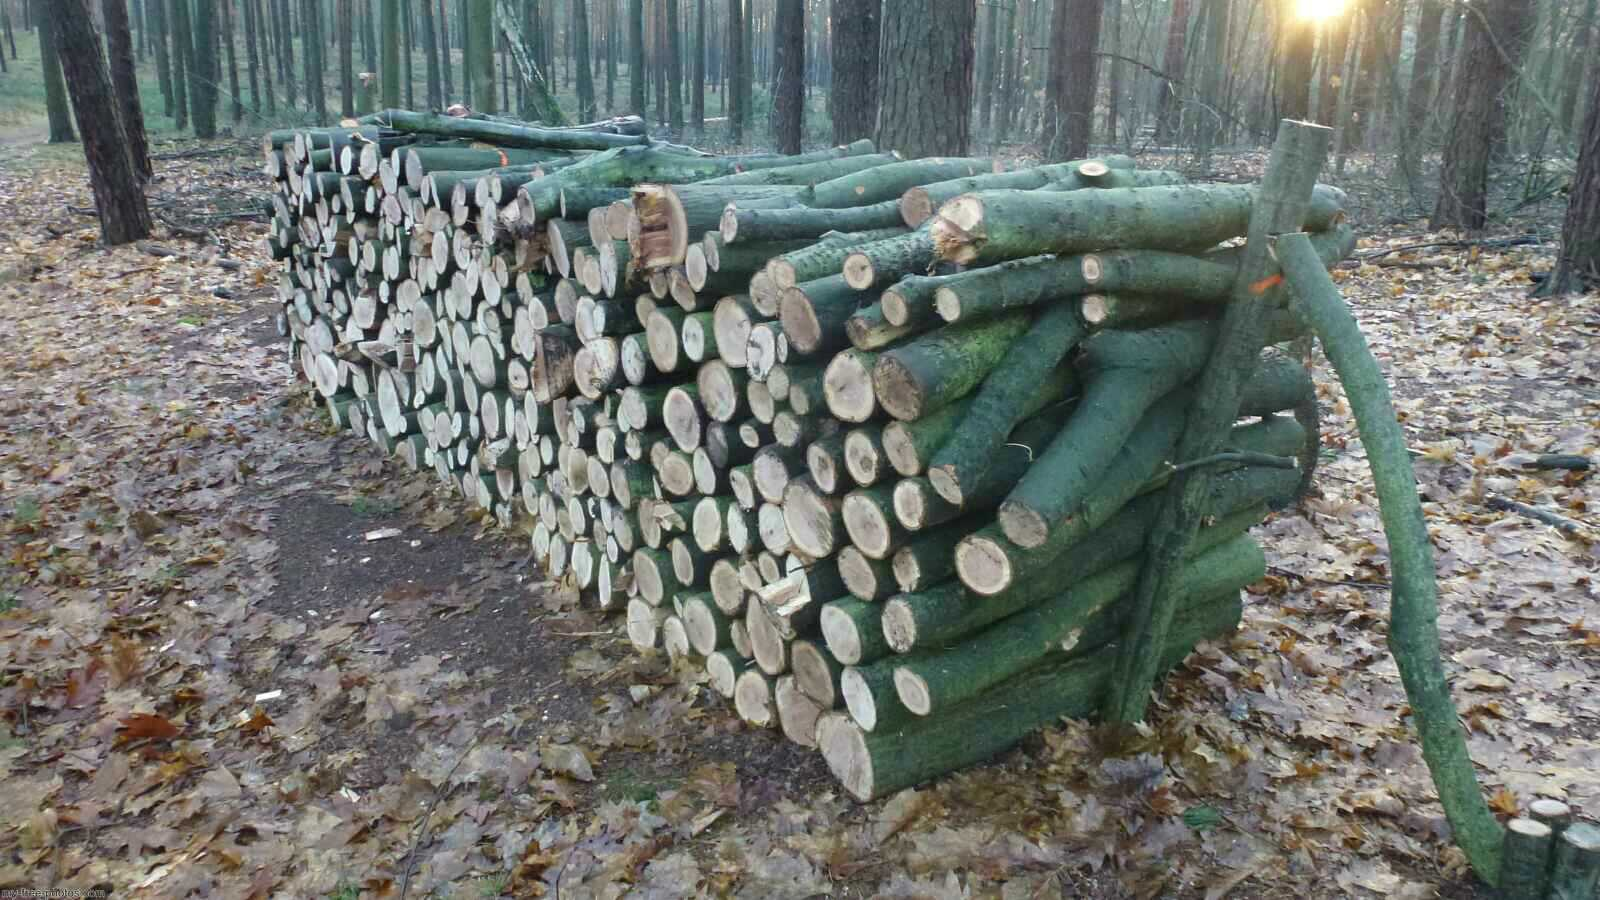 Logging in the Berliner forest.